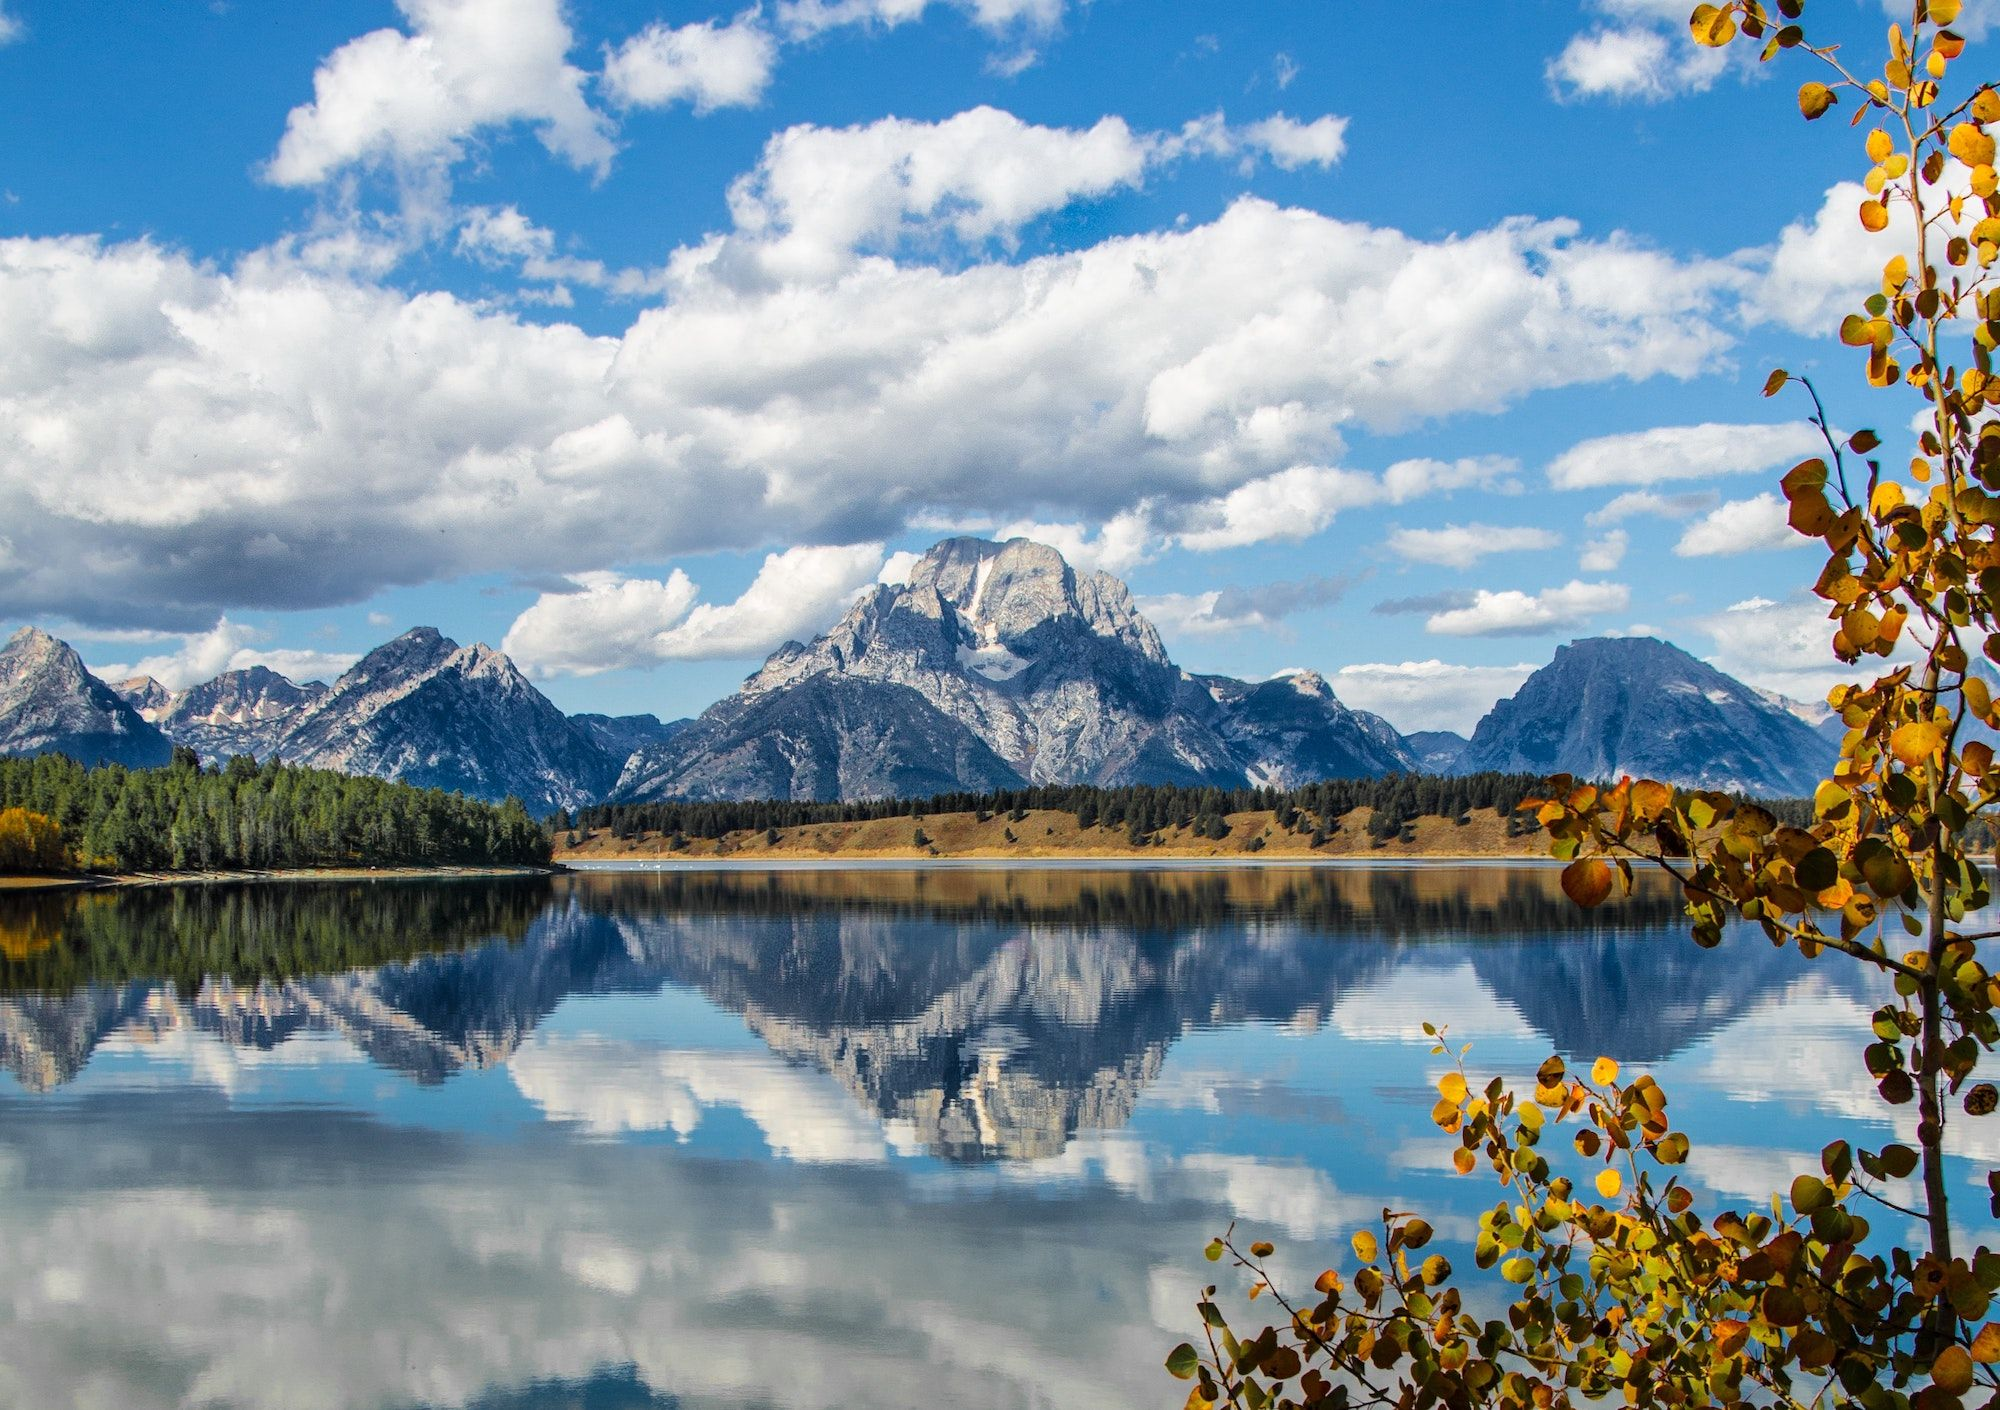 mountain surrounded by clouds reflecting off of lake in foreground_best corporate retreat destinations_flok